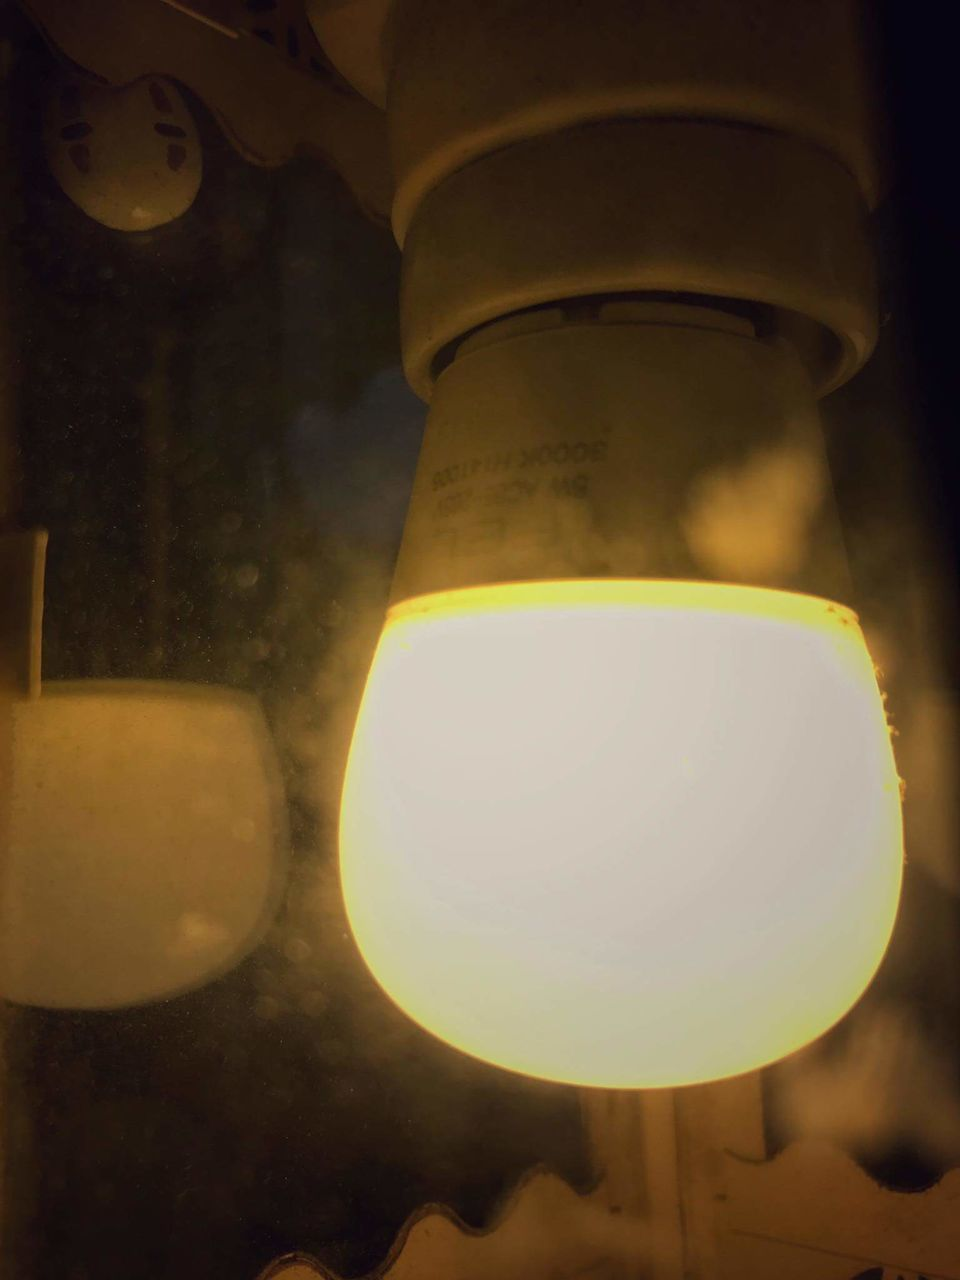 illuminated, lighting equipment, no people, close-up, night, yellow, low angle view, indoors, technology, astronomy